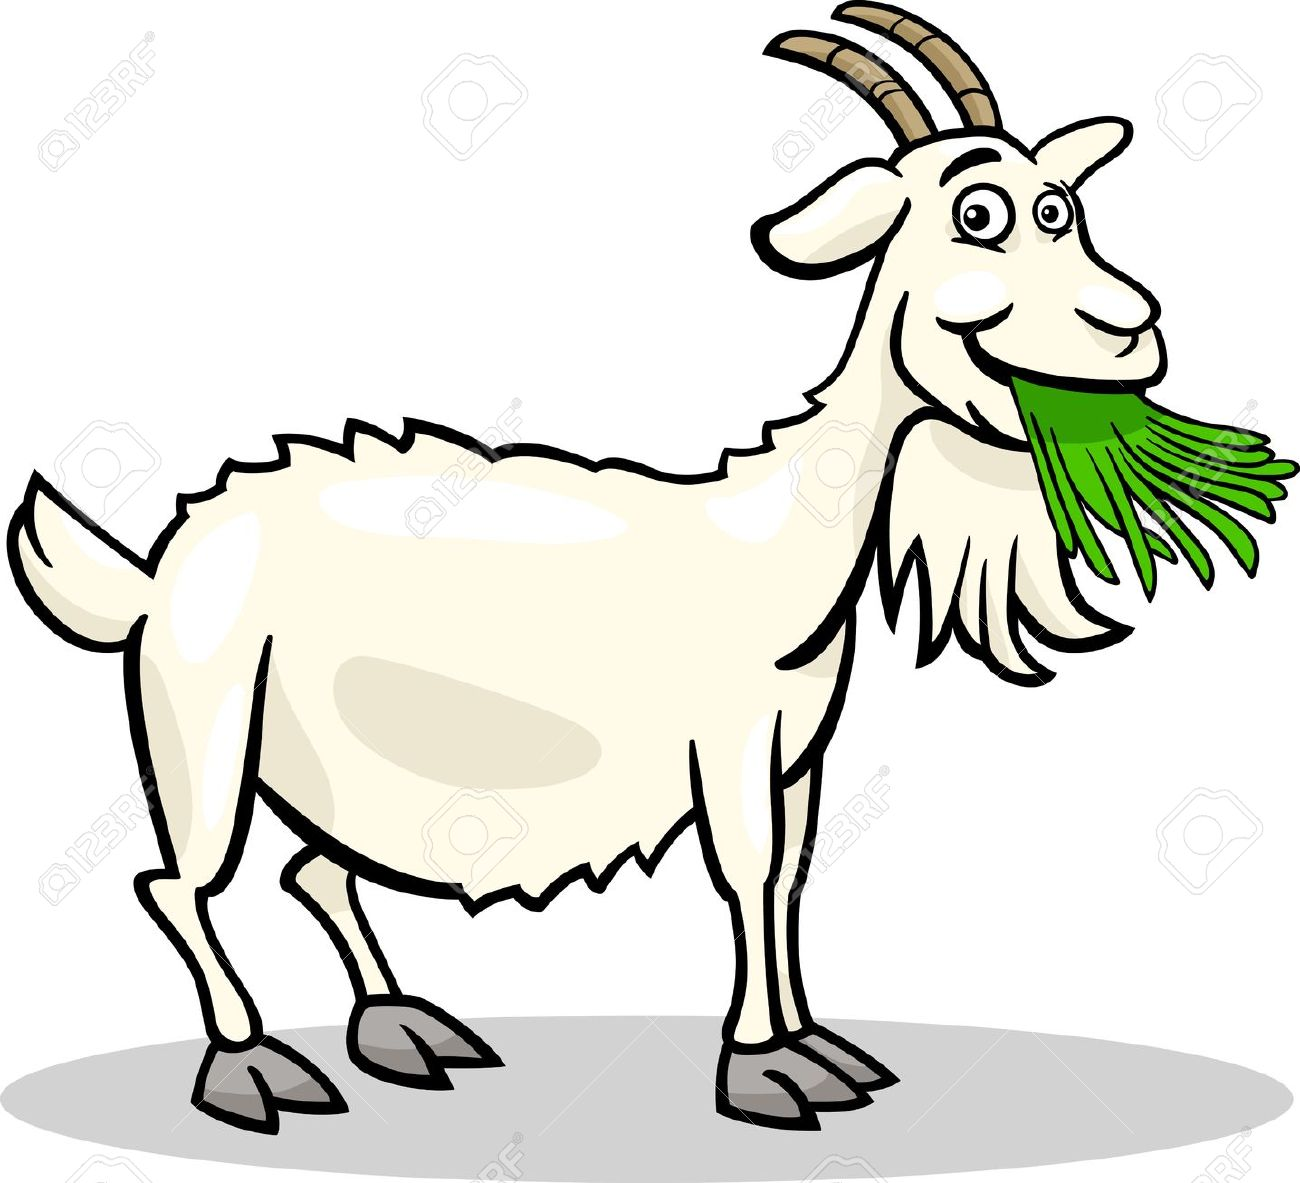 Free download best on. Goat clipart goat grazing